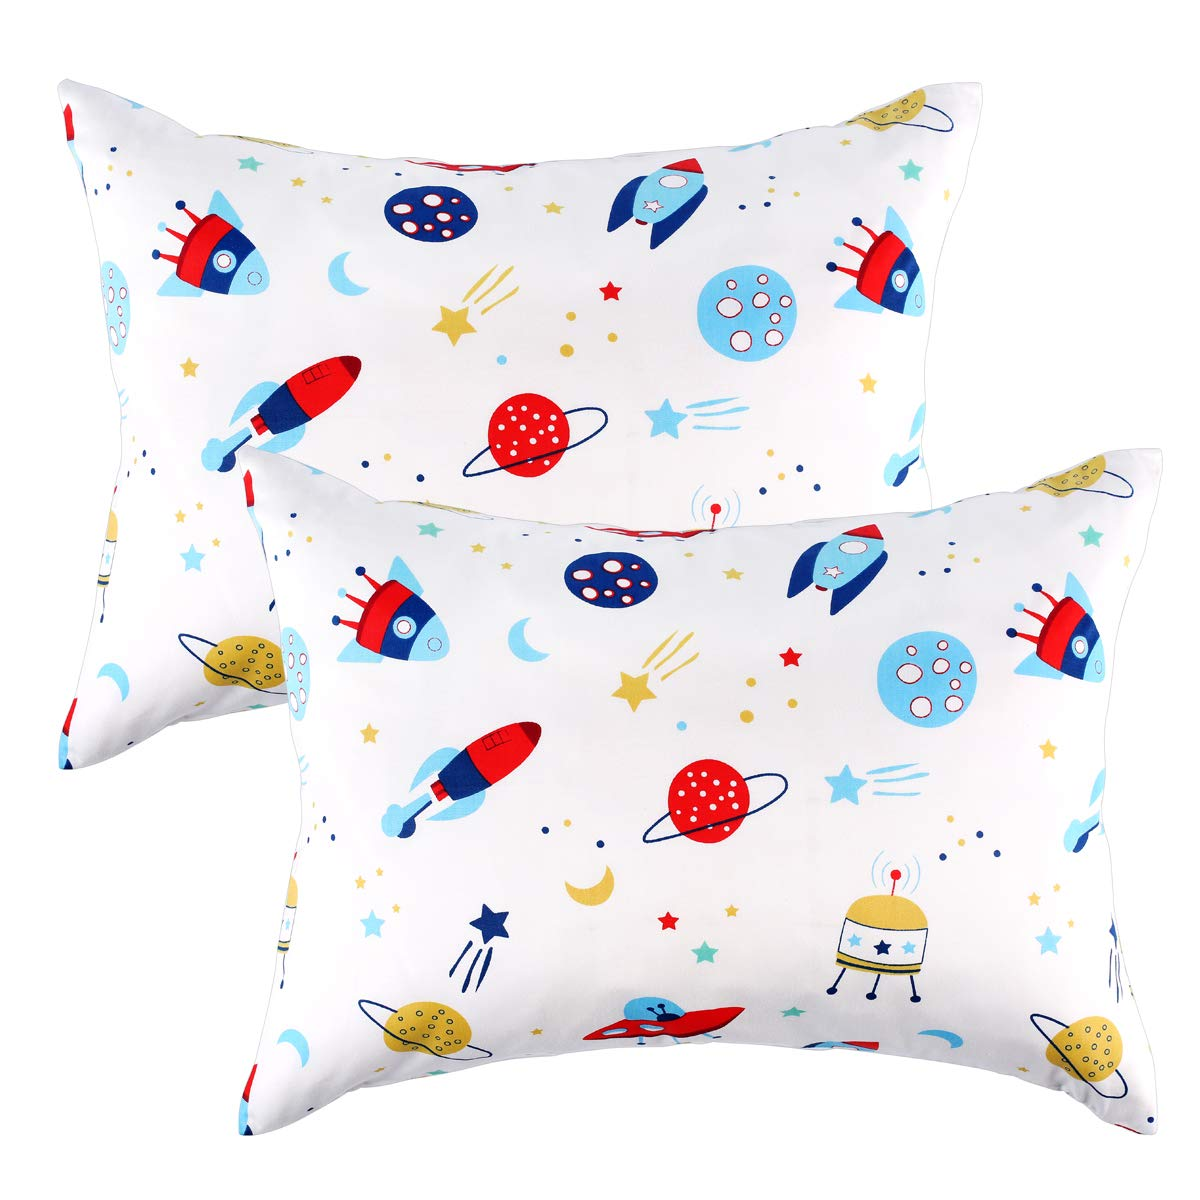 Kids Toddler Pillowcases 100% Cotton 14x19 2 Packs Fits Kid Toddler Bedding Pillow 14x19, 13x18 Small Pillow (White, Rockets Outer Space Stars) by IBraFashion